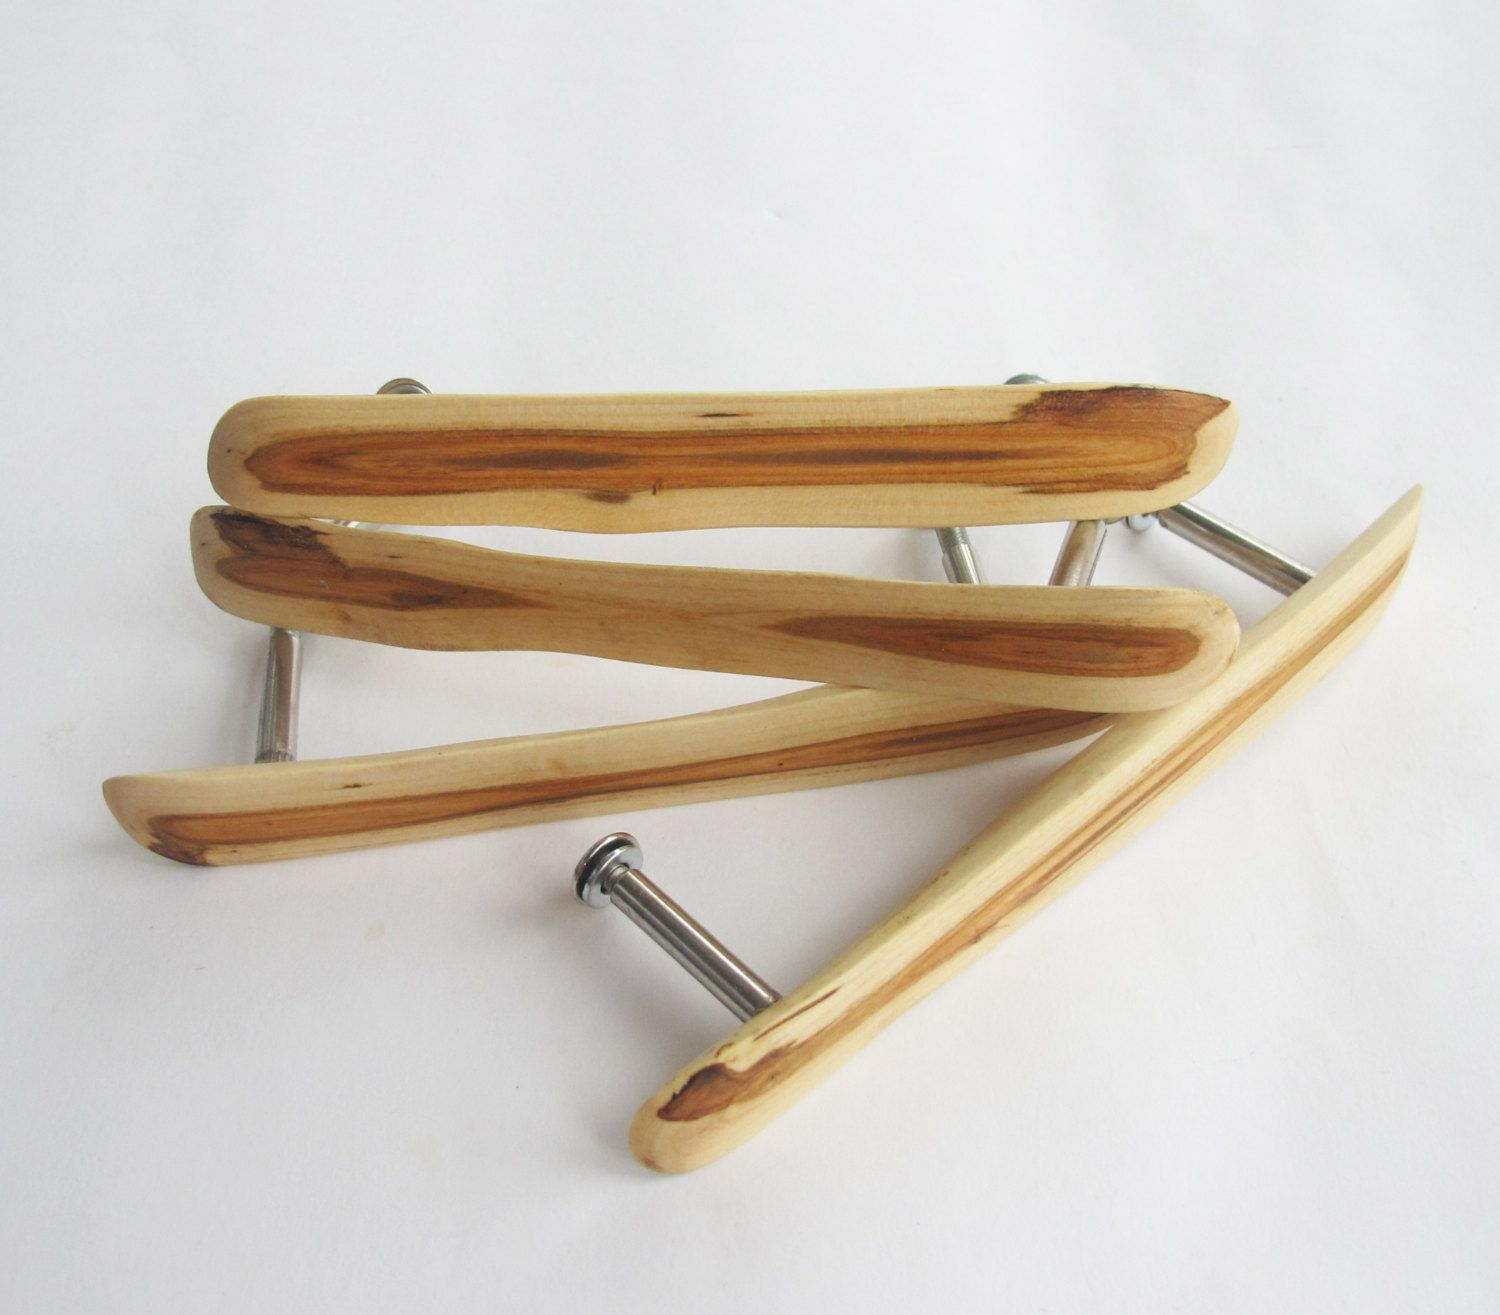 These Handmade Wooden Drawer Pulls Are Made From A Plum Wood The Set Of 2 Drawer Pulls Is A